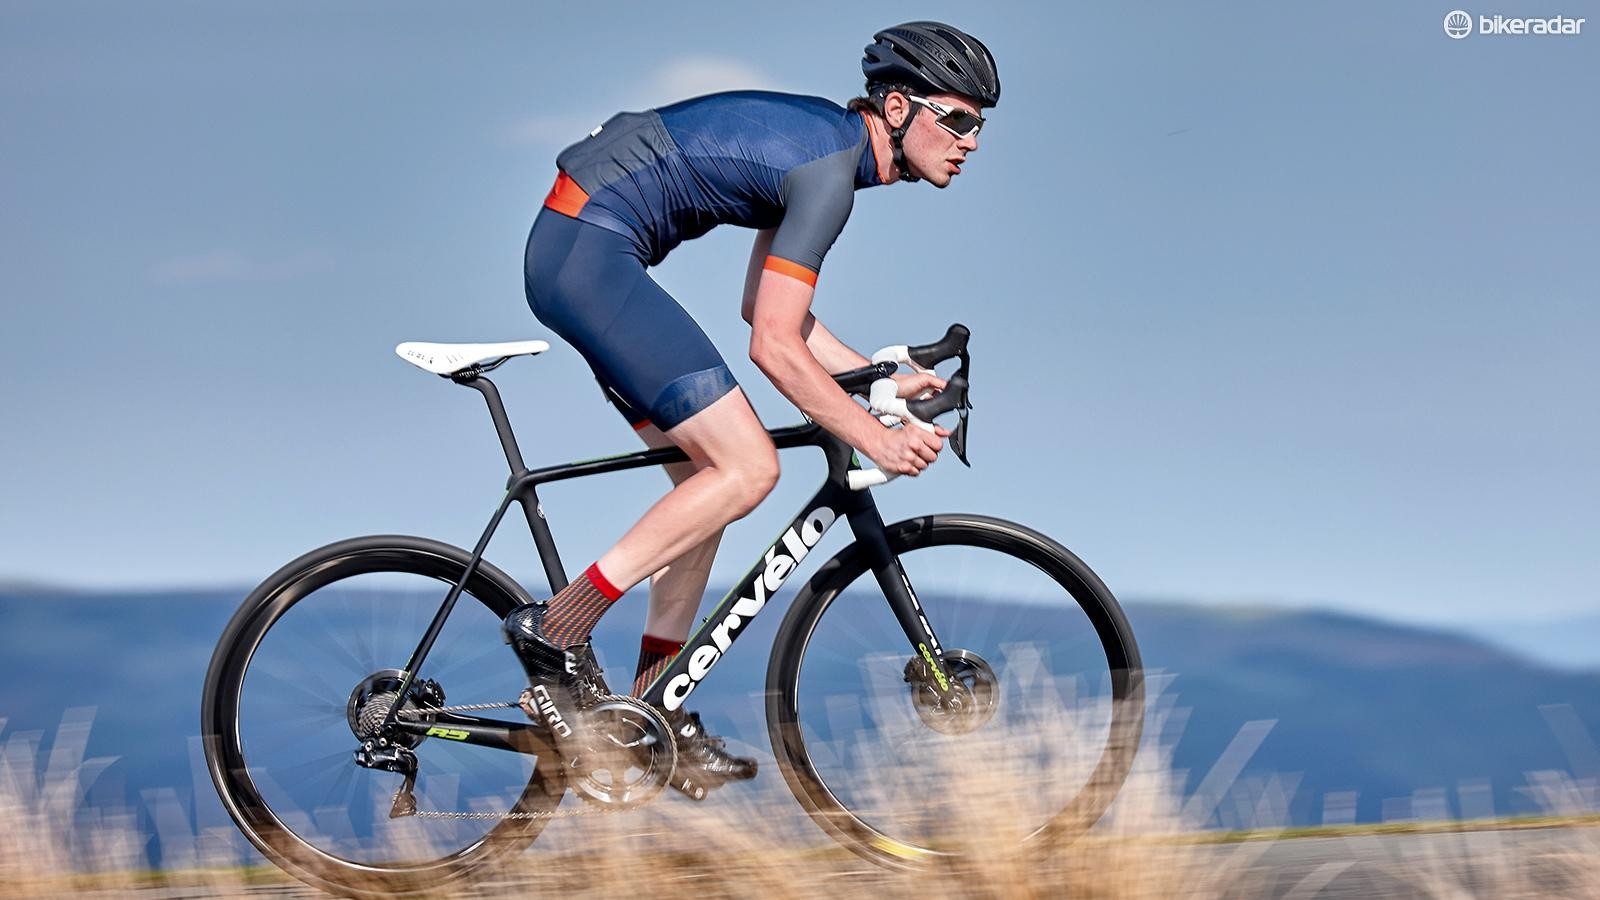 The Cervélo R5 Disc achieves the highest levels of performance for much less cash than its rivals